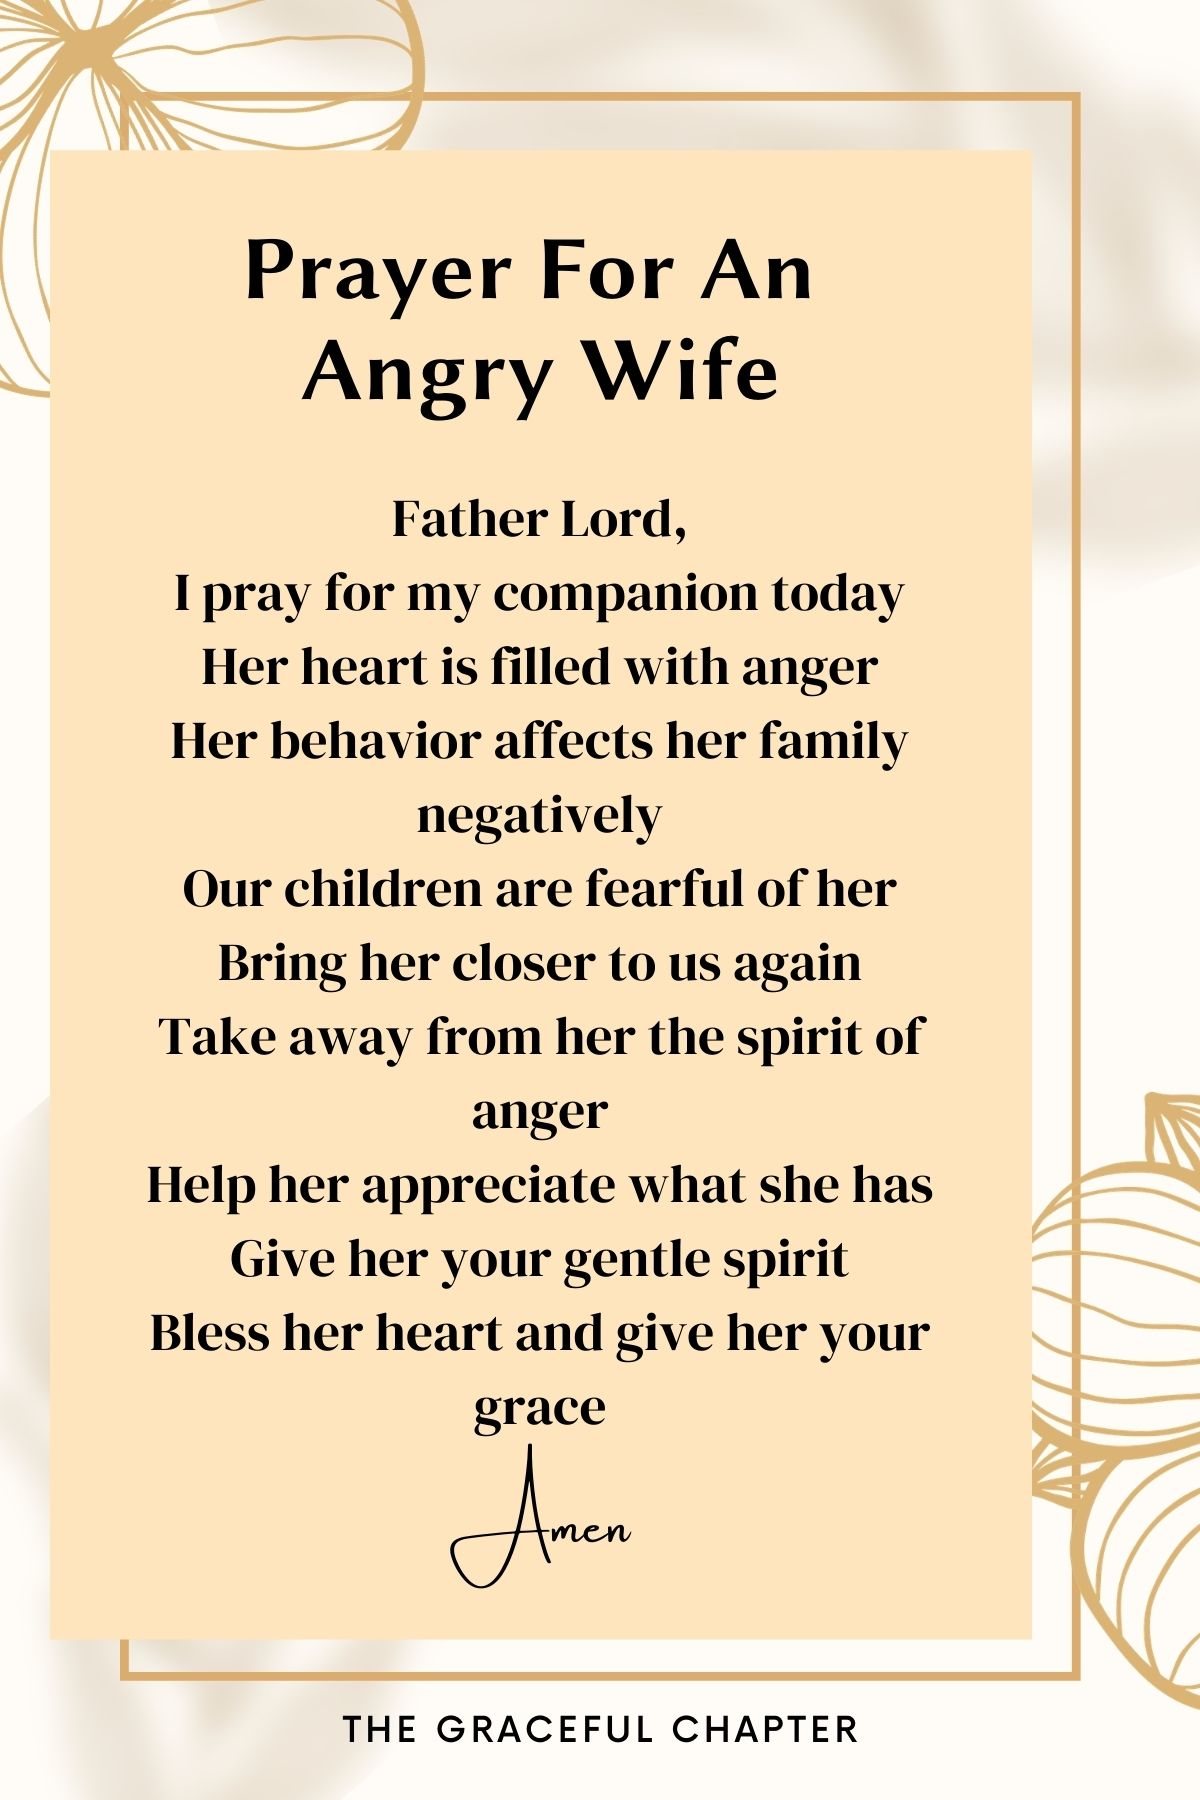 Prayer for an angry wife